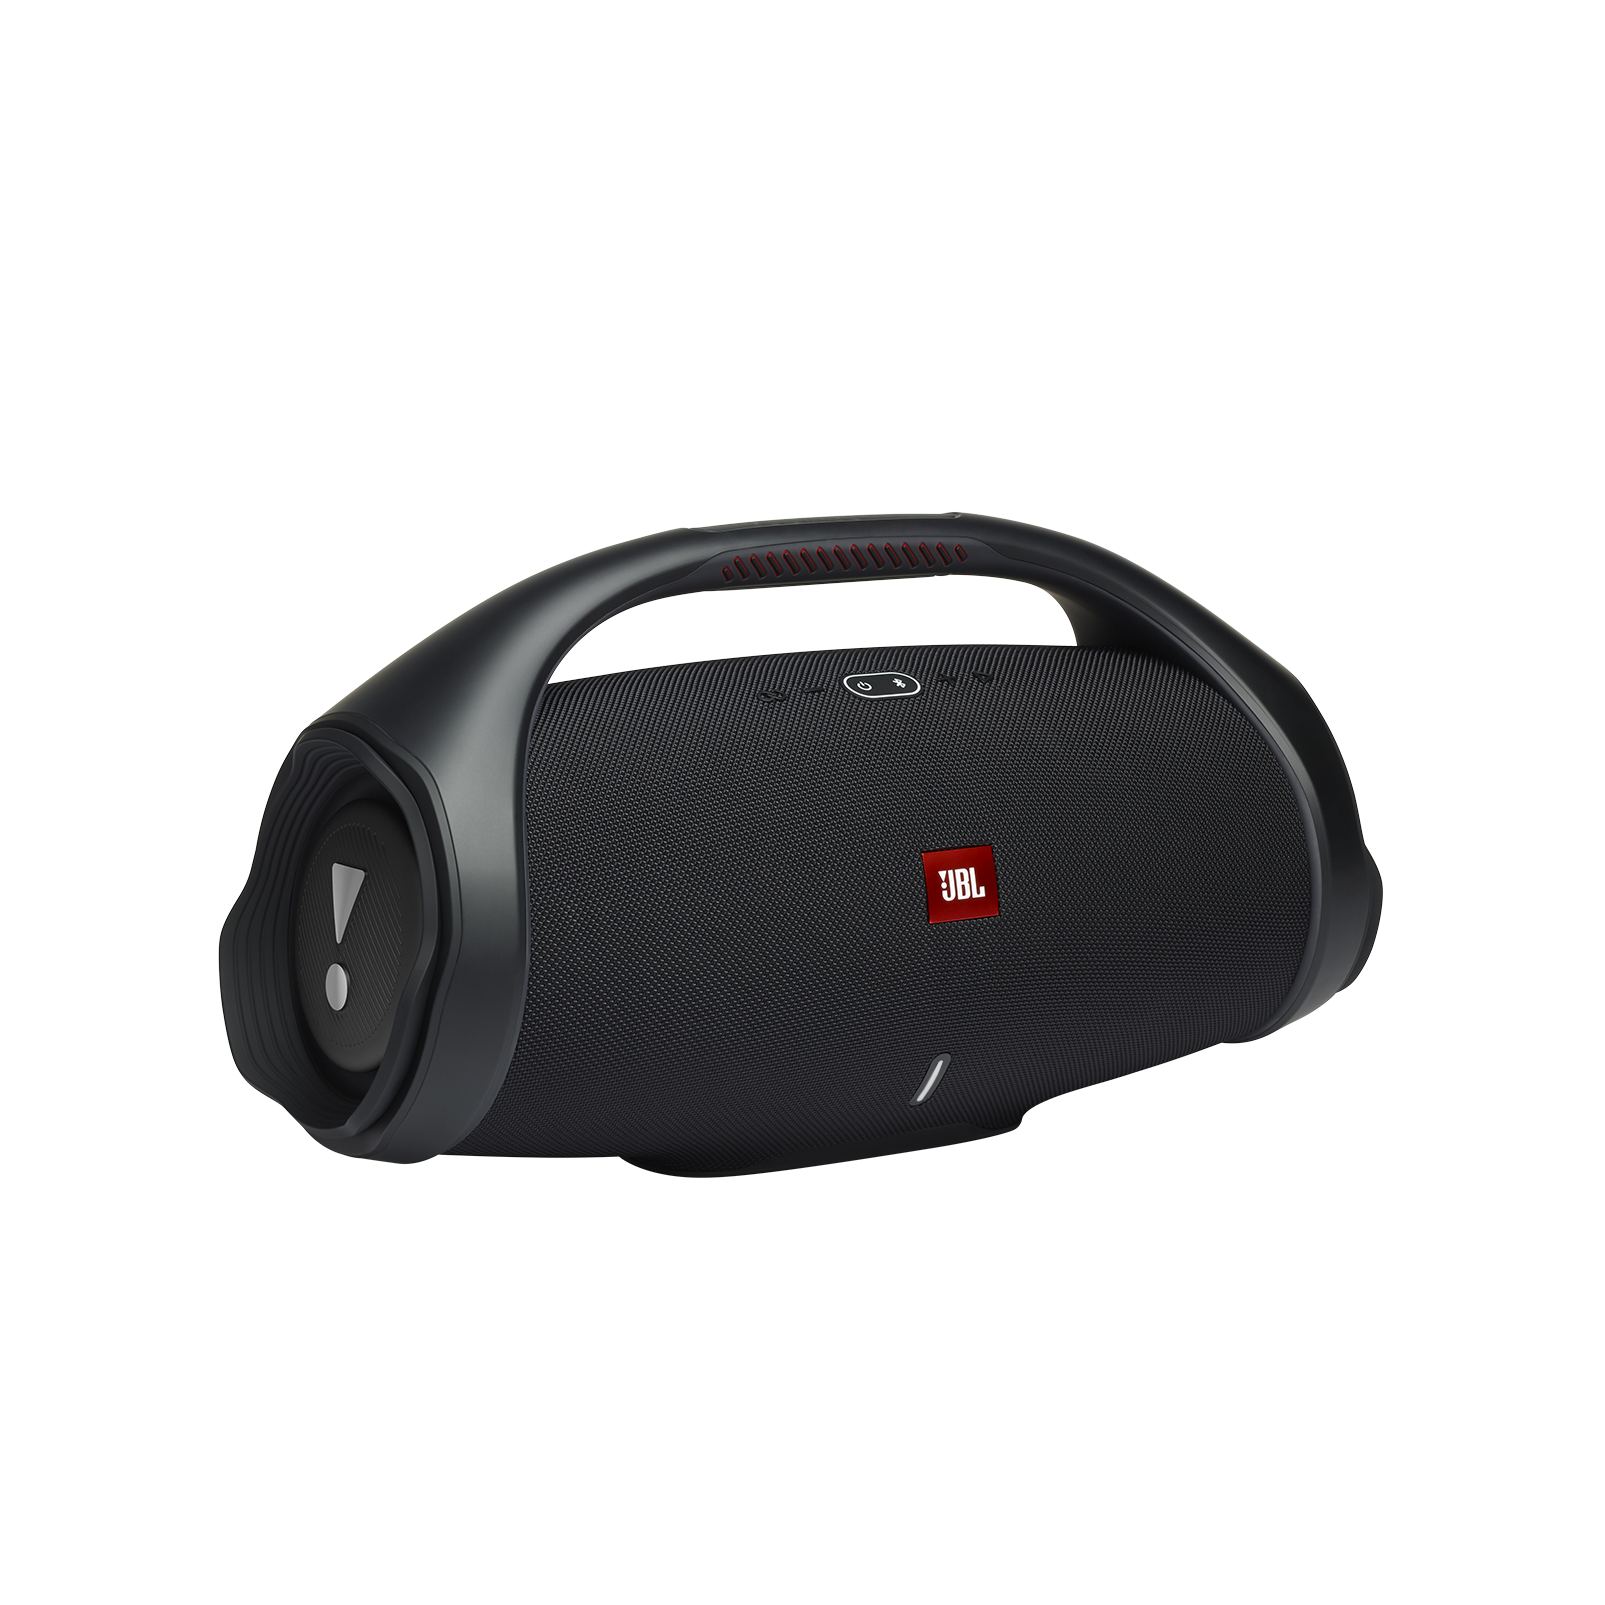 JBL Boombox 2 - Black - Portable Bluetooth Speaker - Hero